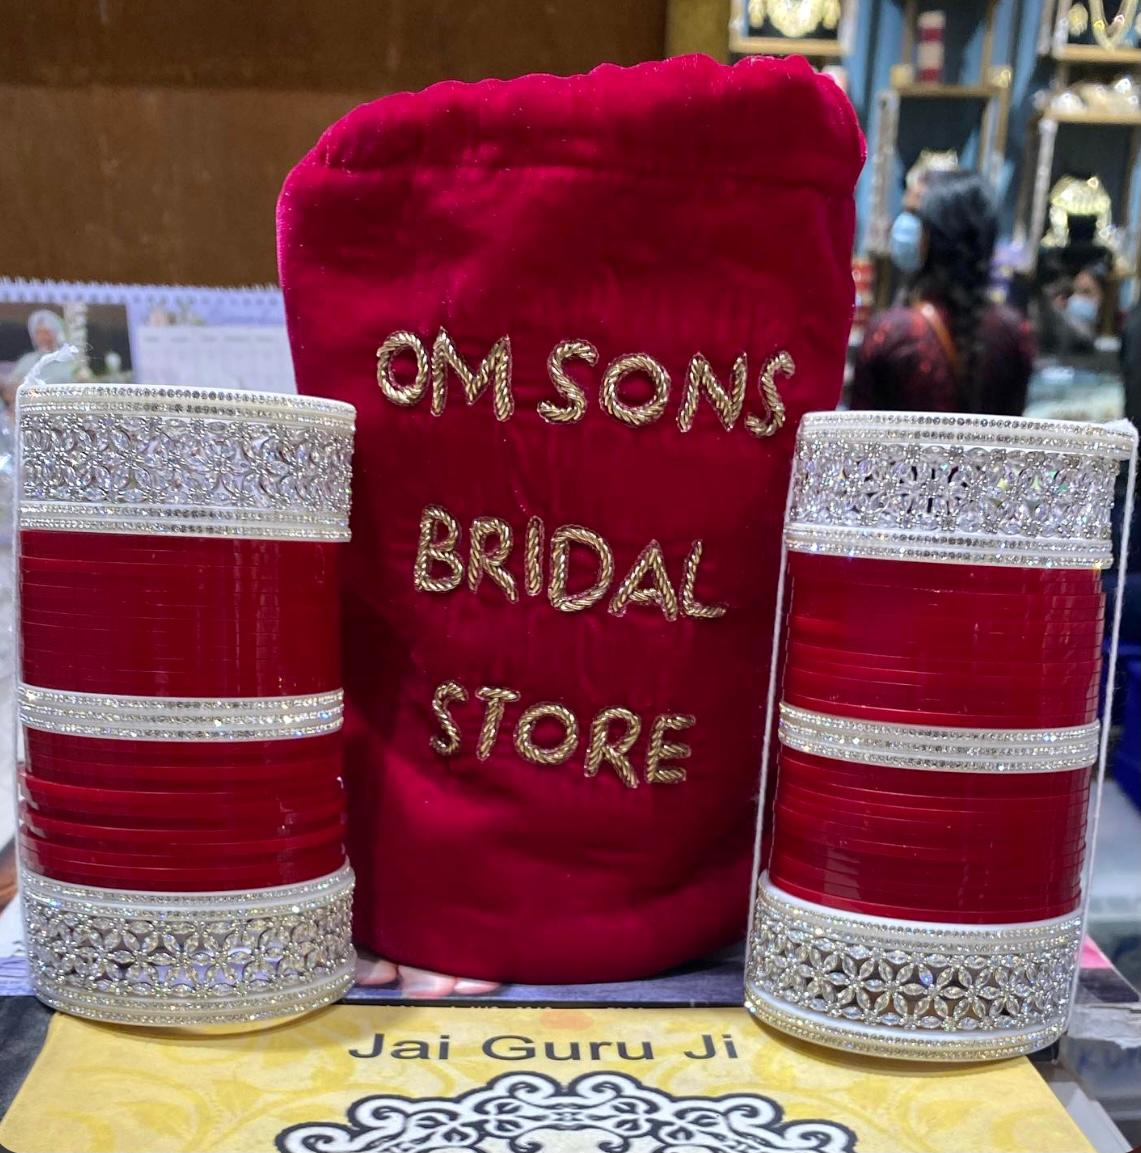 Om Sons Bridal Store: Racing ahead others in the bridal jewelry and accessories market thriving on their creative designs and innovativeness.